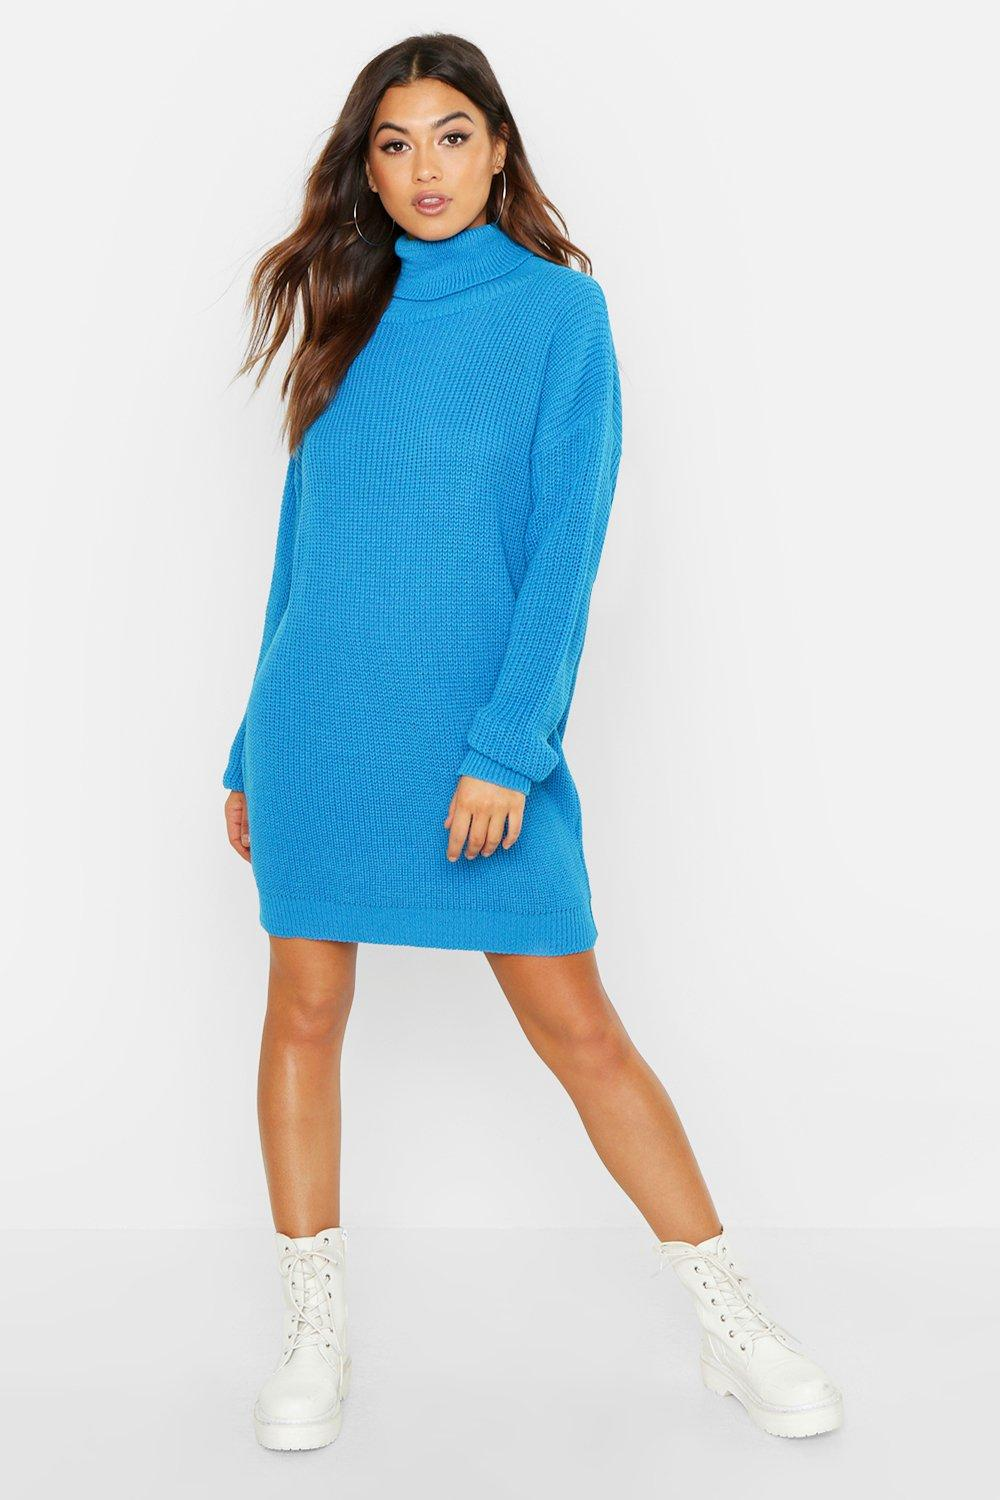 8e2153e96fd Womens Blue Roll Neck Jumper Dress. Hover to zoom